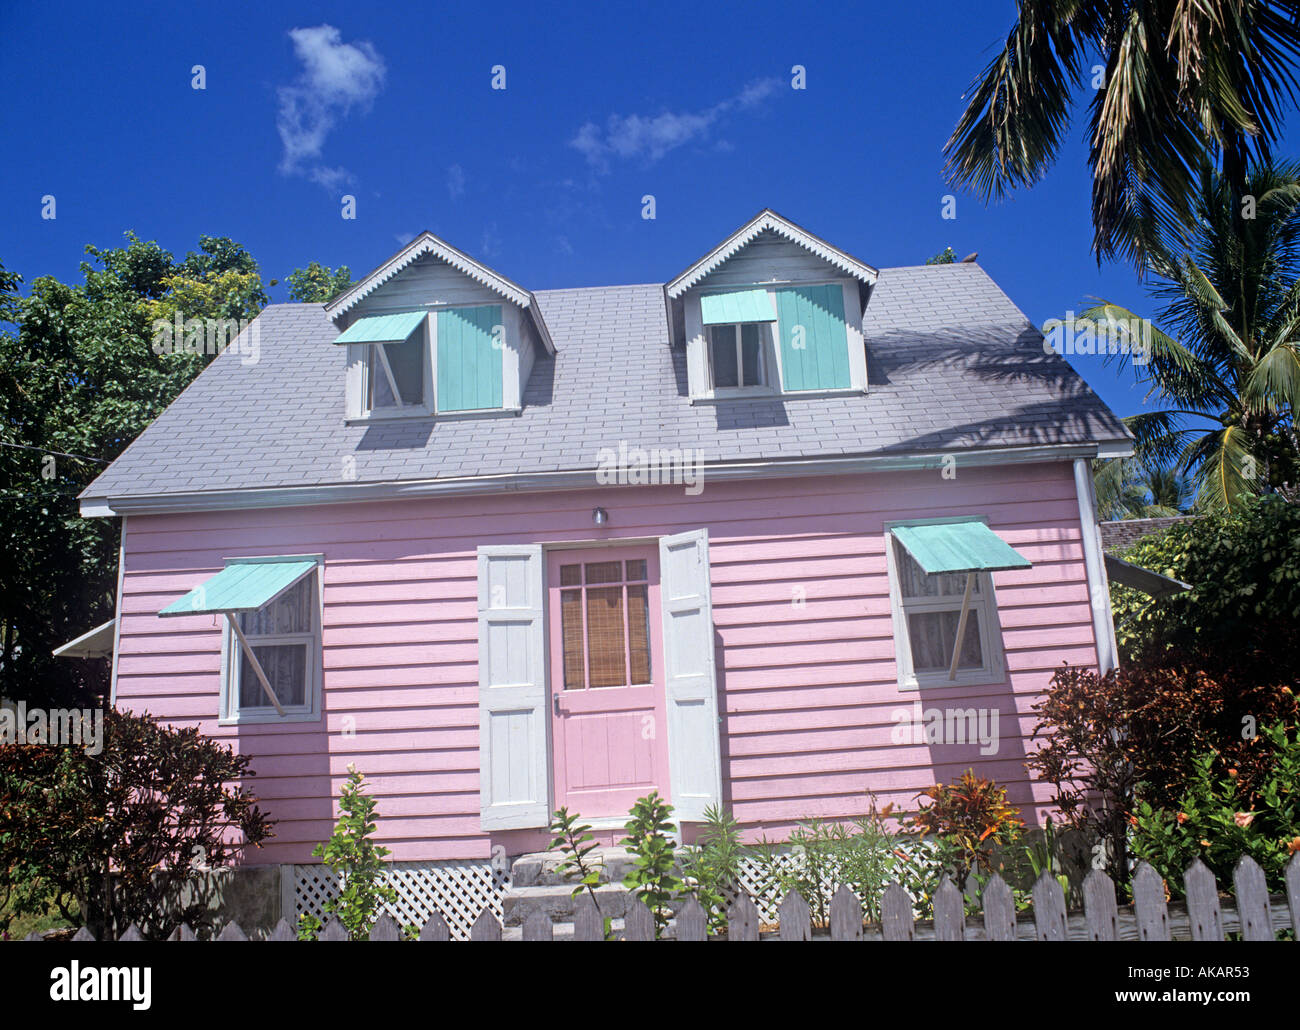 Traditional Tropical Wooden Building Painted In Pastel